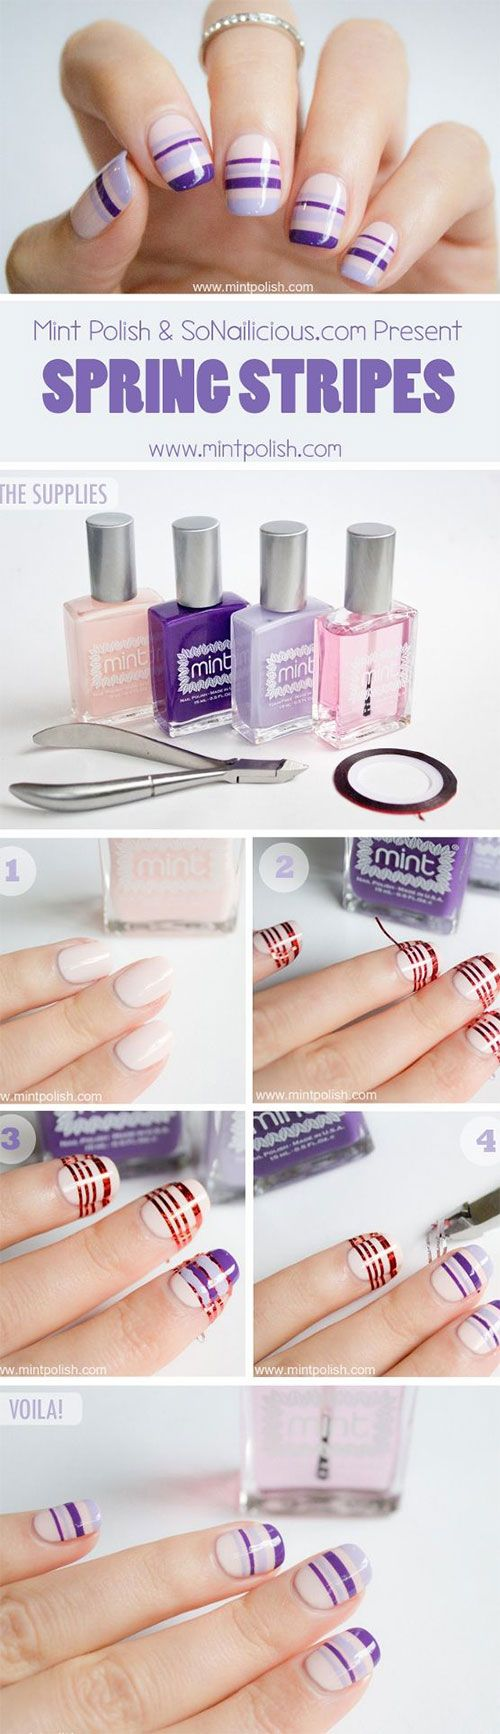 25-Easy-Step-By-Step-Nail-Art-Tutorials-For-Beginners-Learners-2014-1